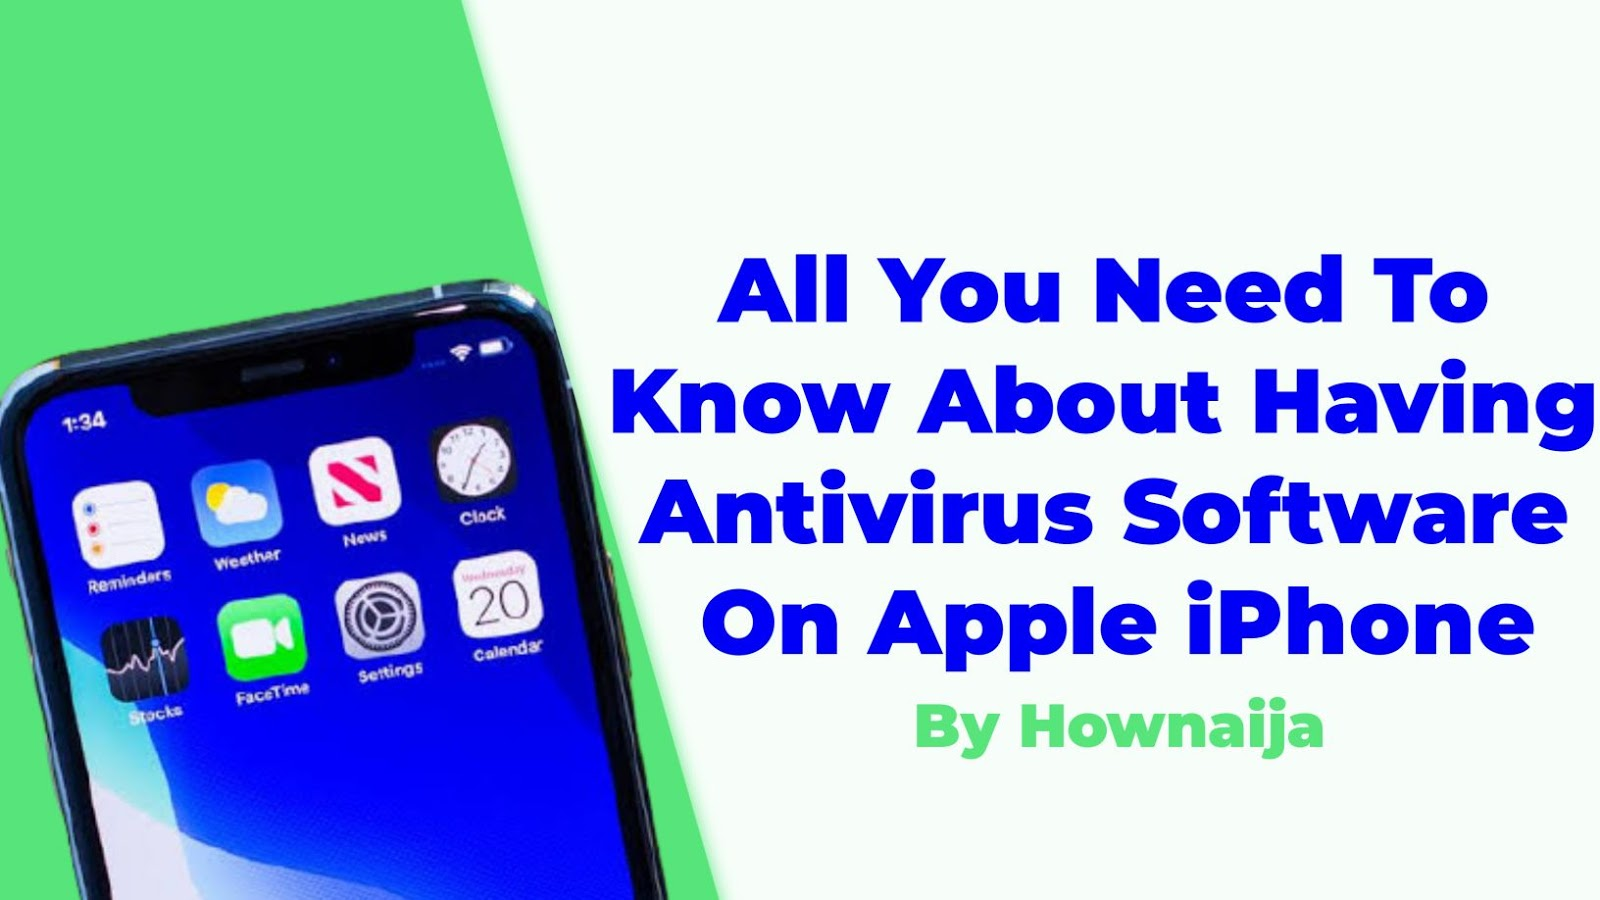 All You Need To Know About Having Antivirus Software On Apple iPhone